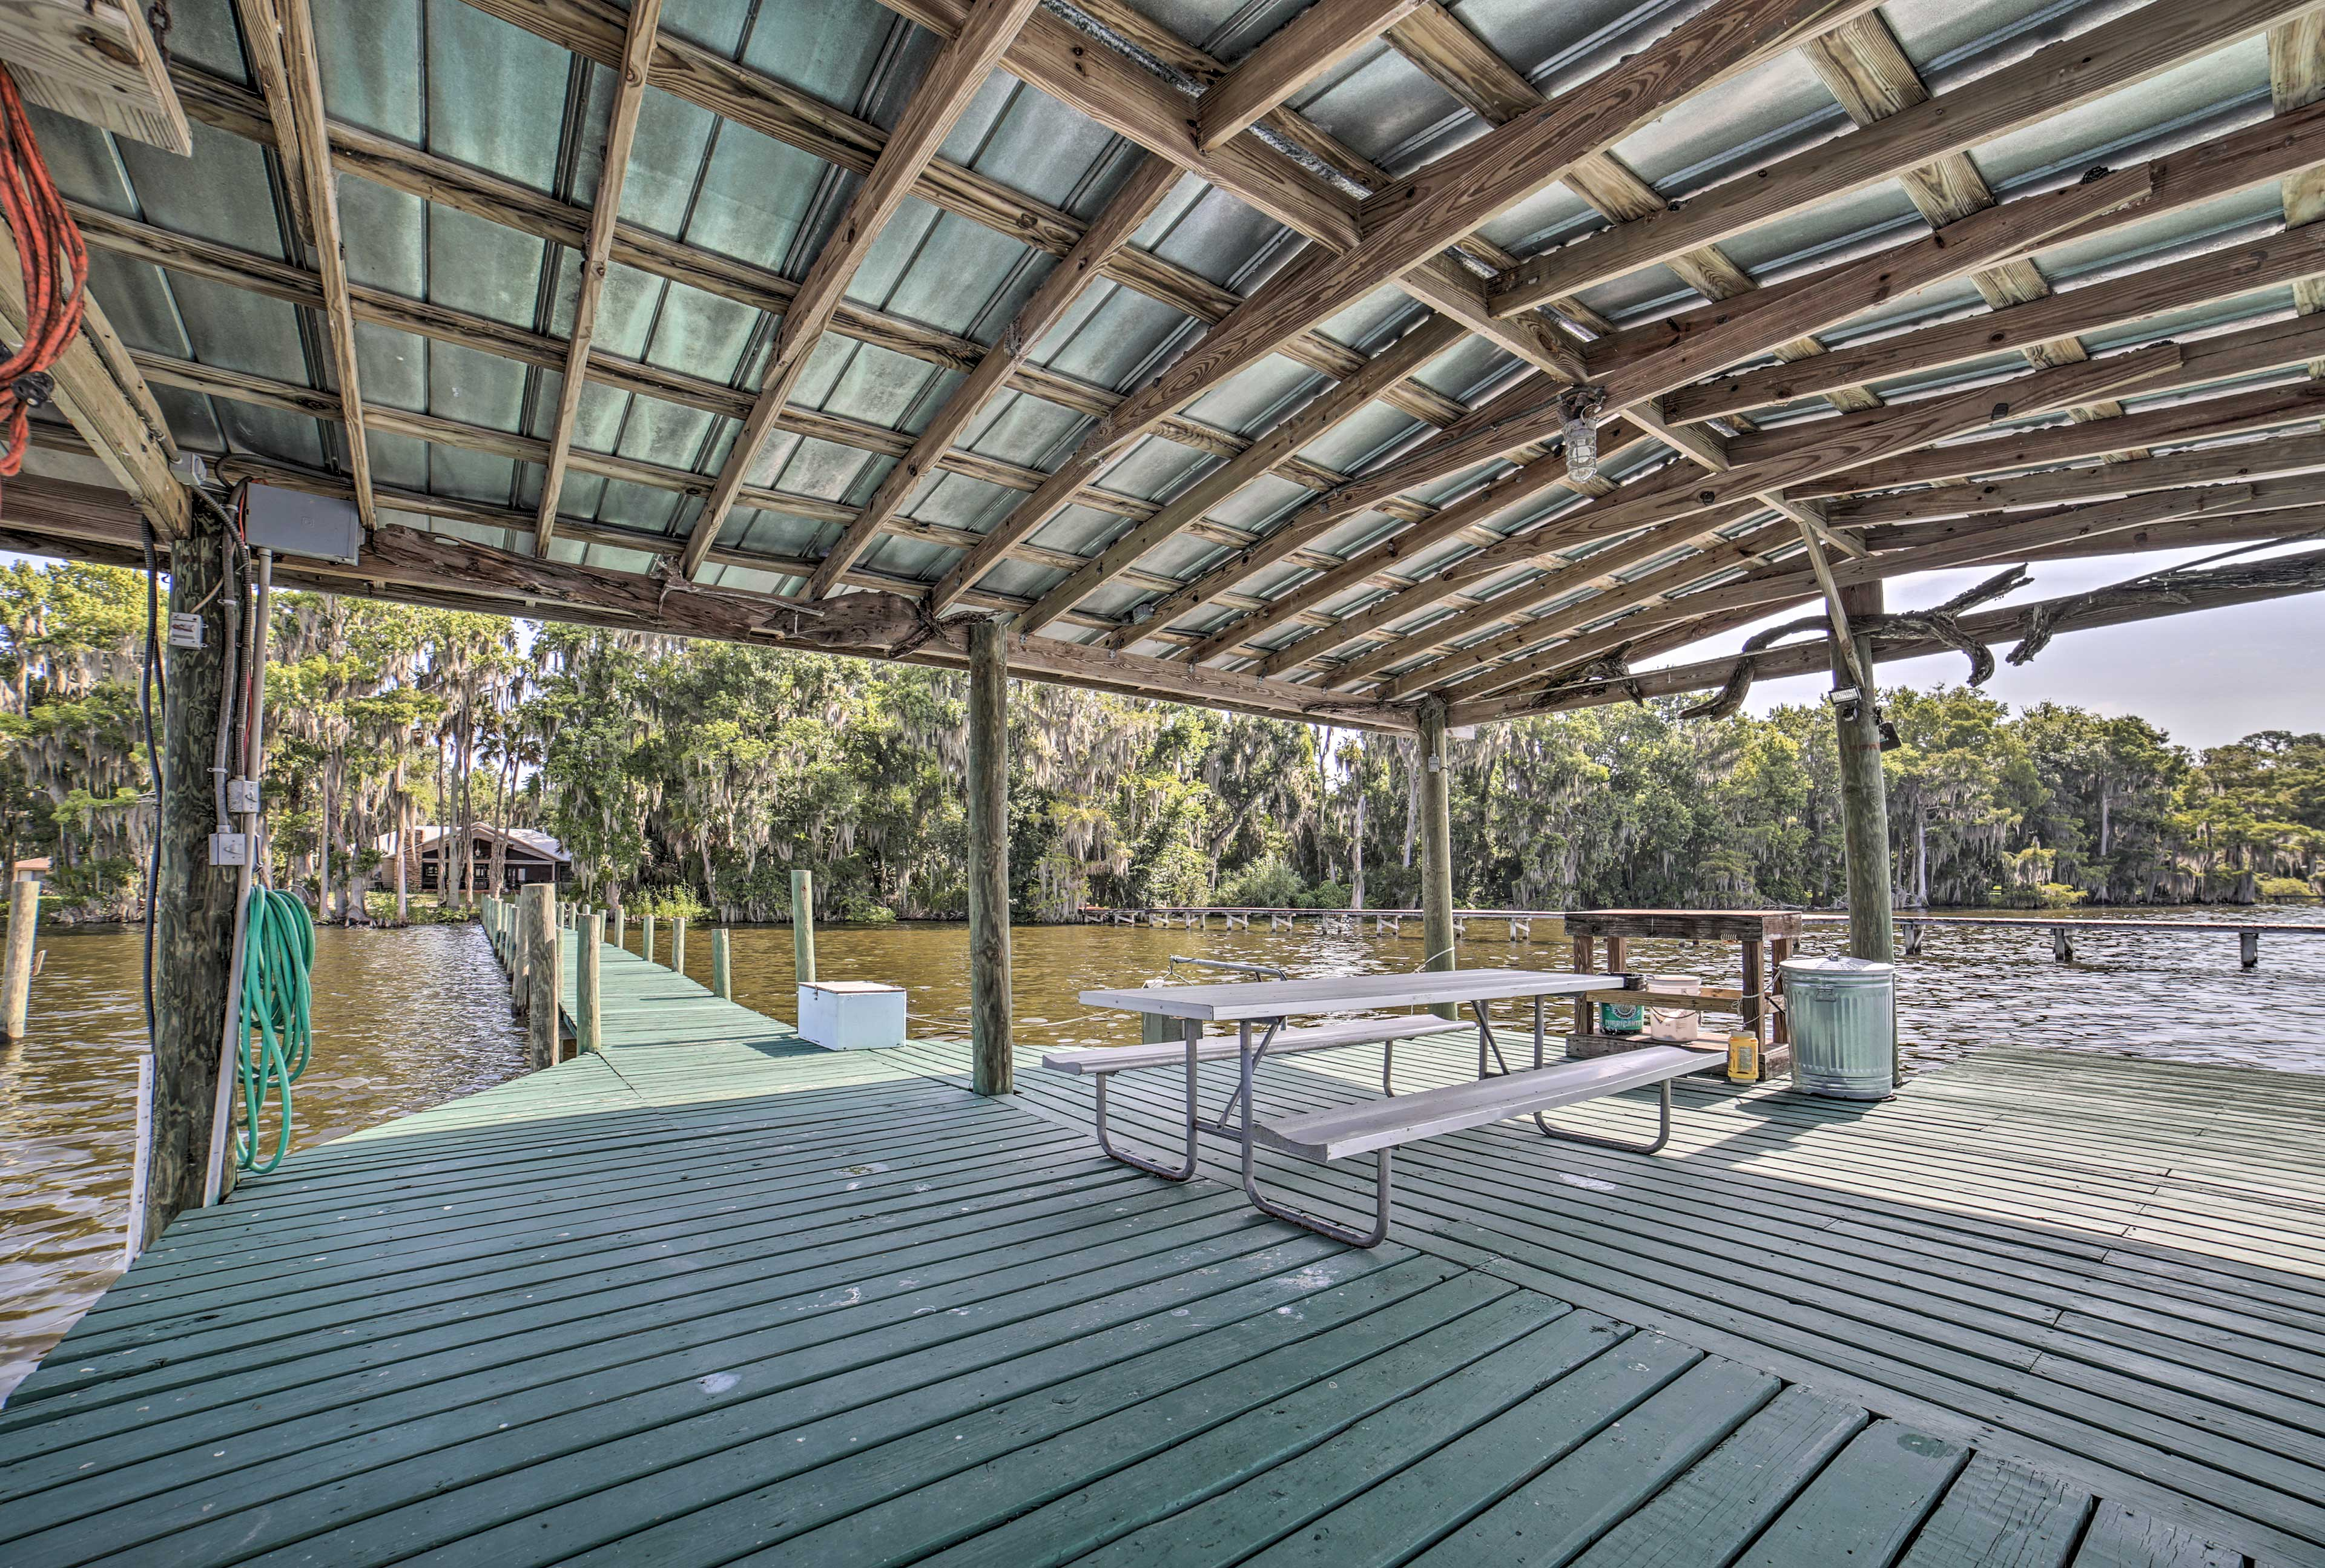 The dock boasts a boat slip, picnic table, and covered area.